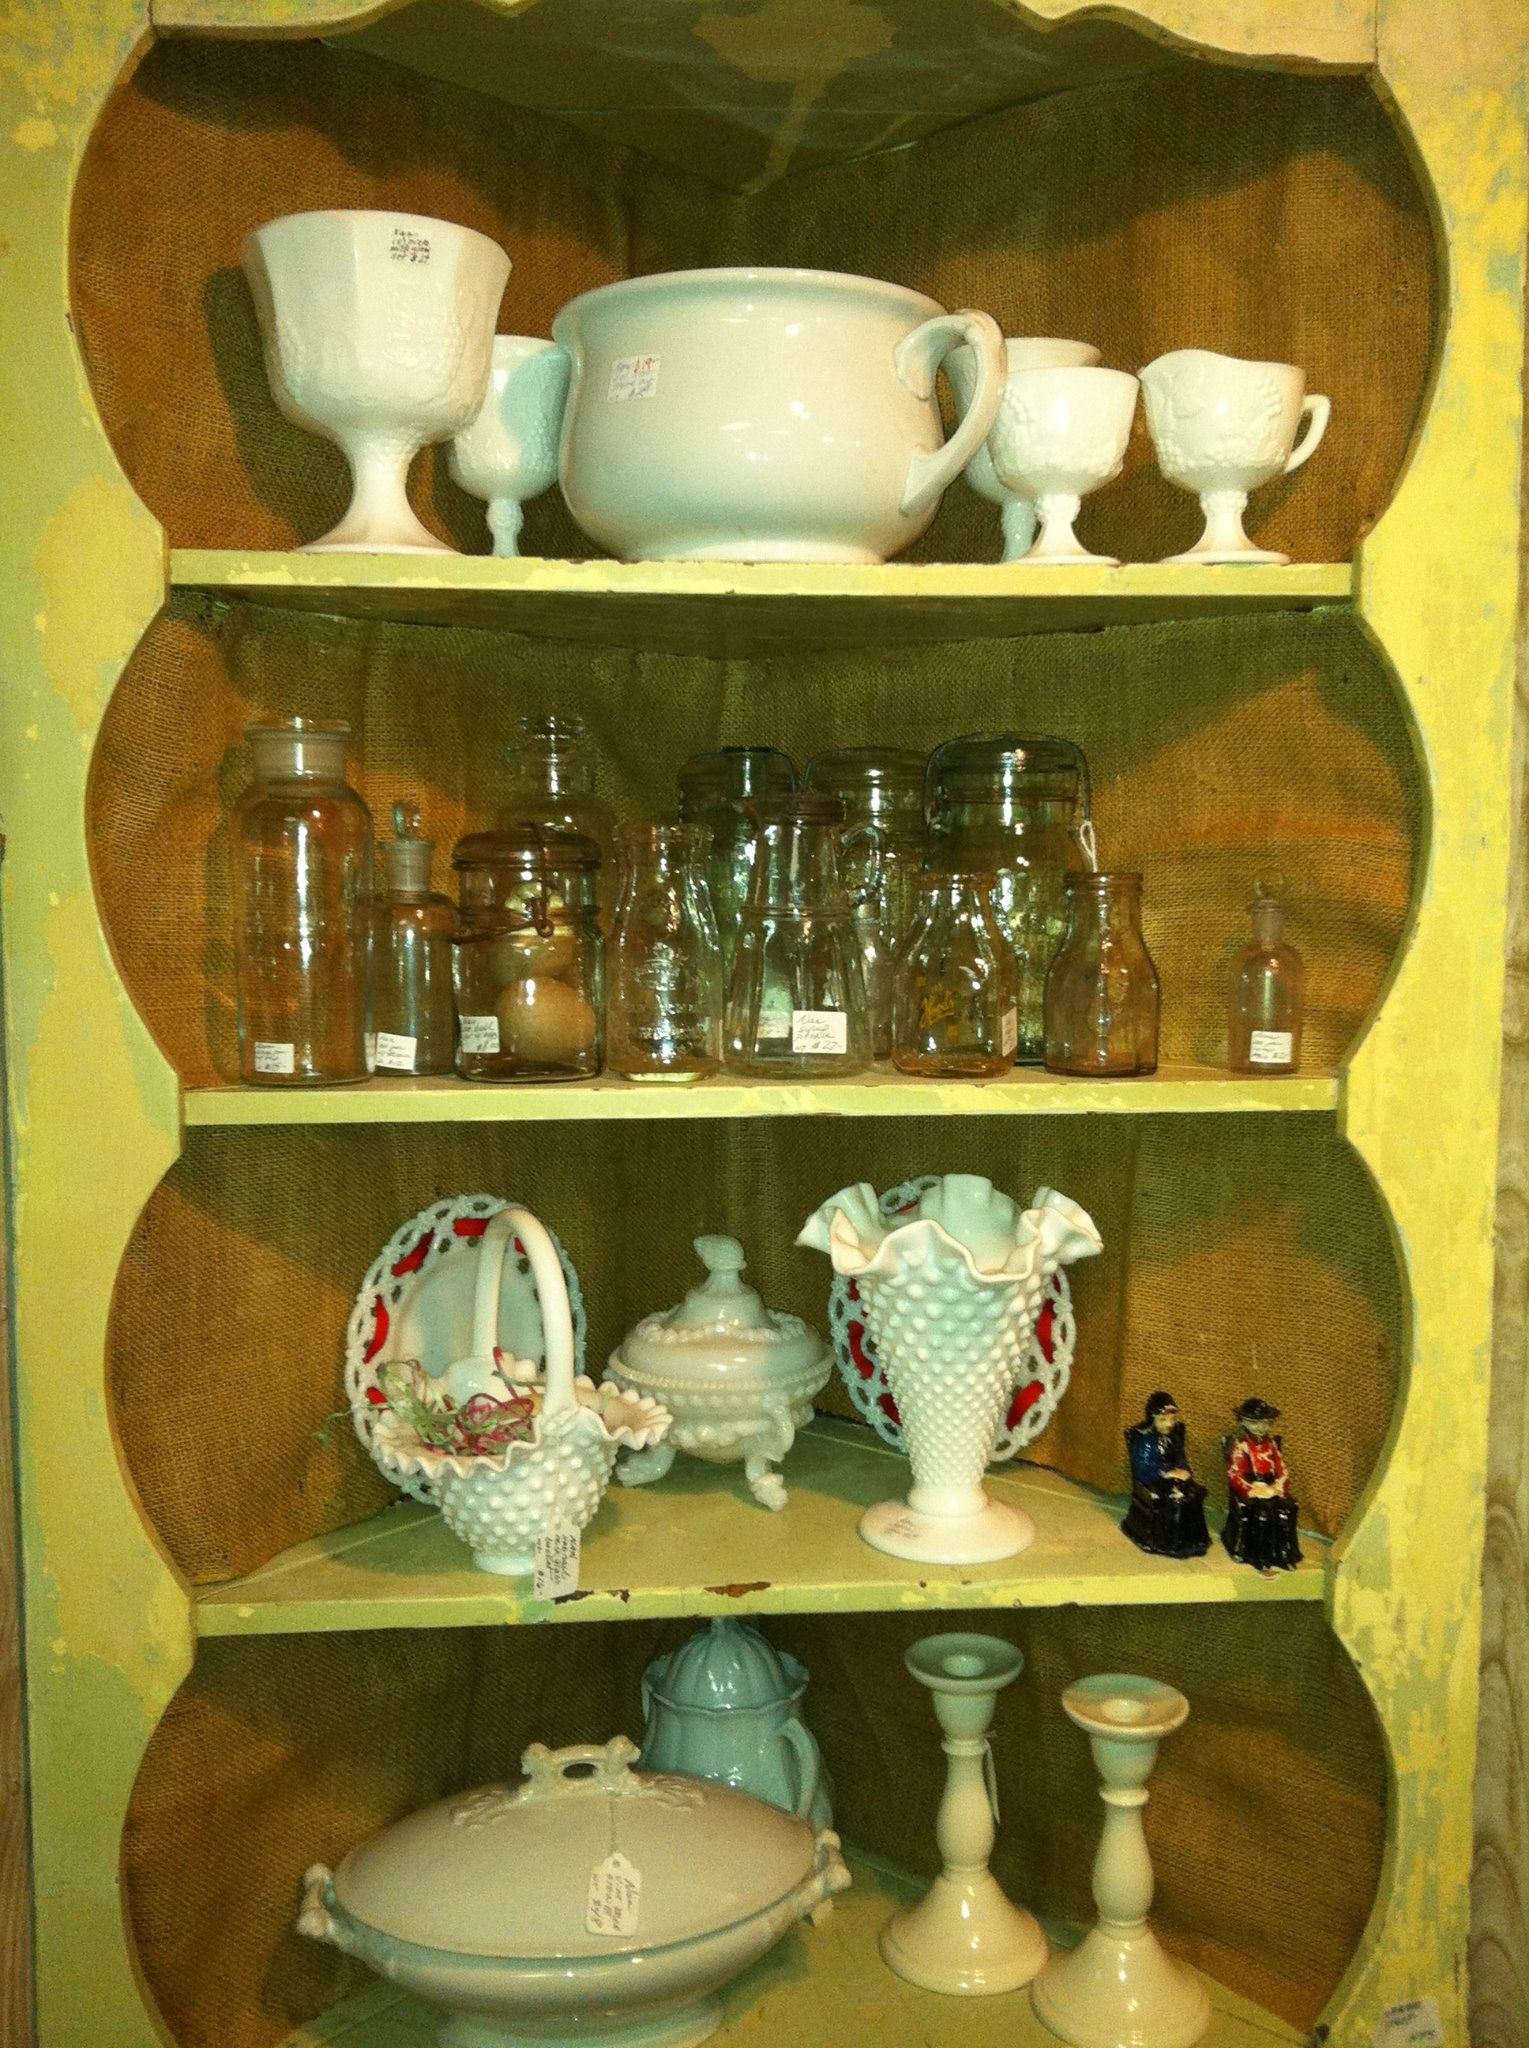 mason jars, milk glass, ironstone...just a taste of what we have in our shop